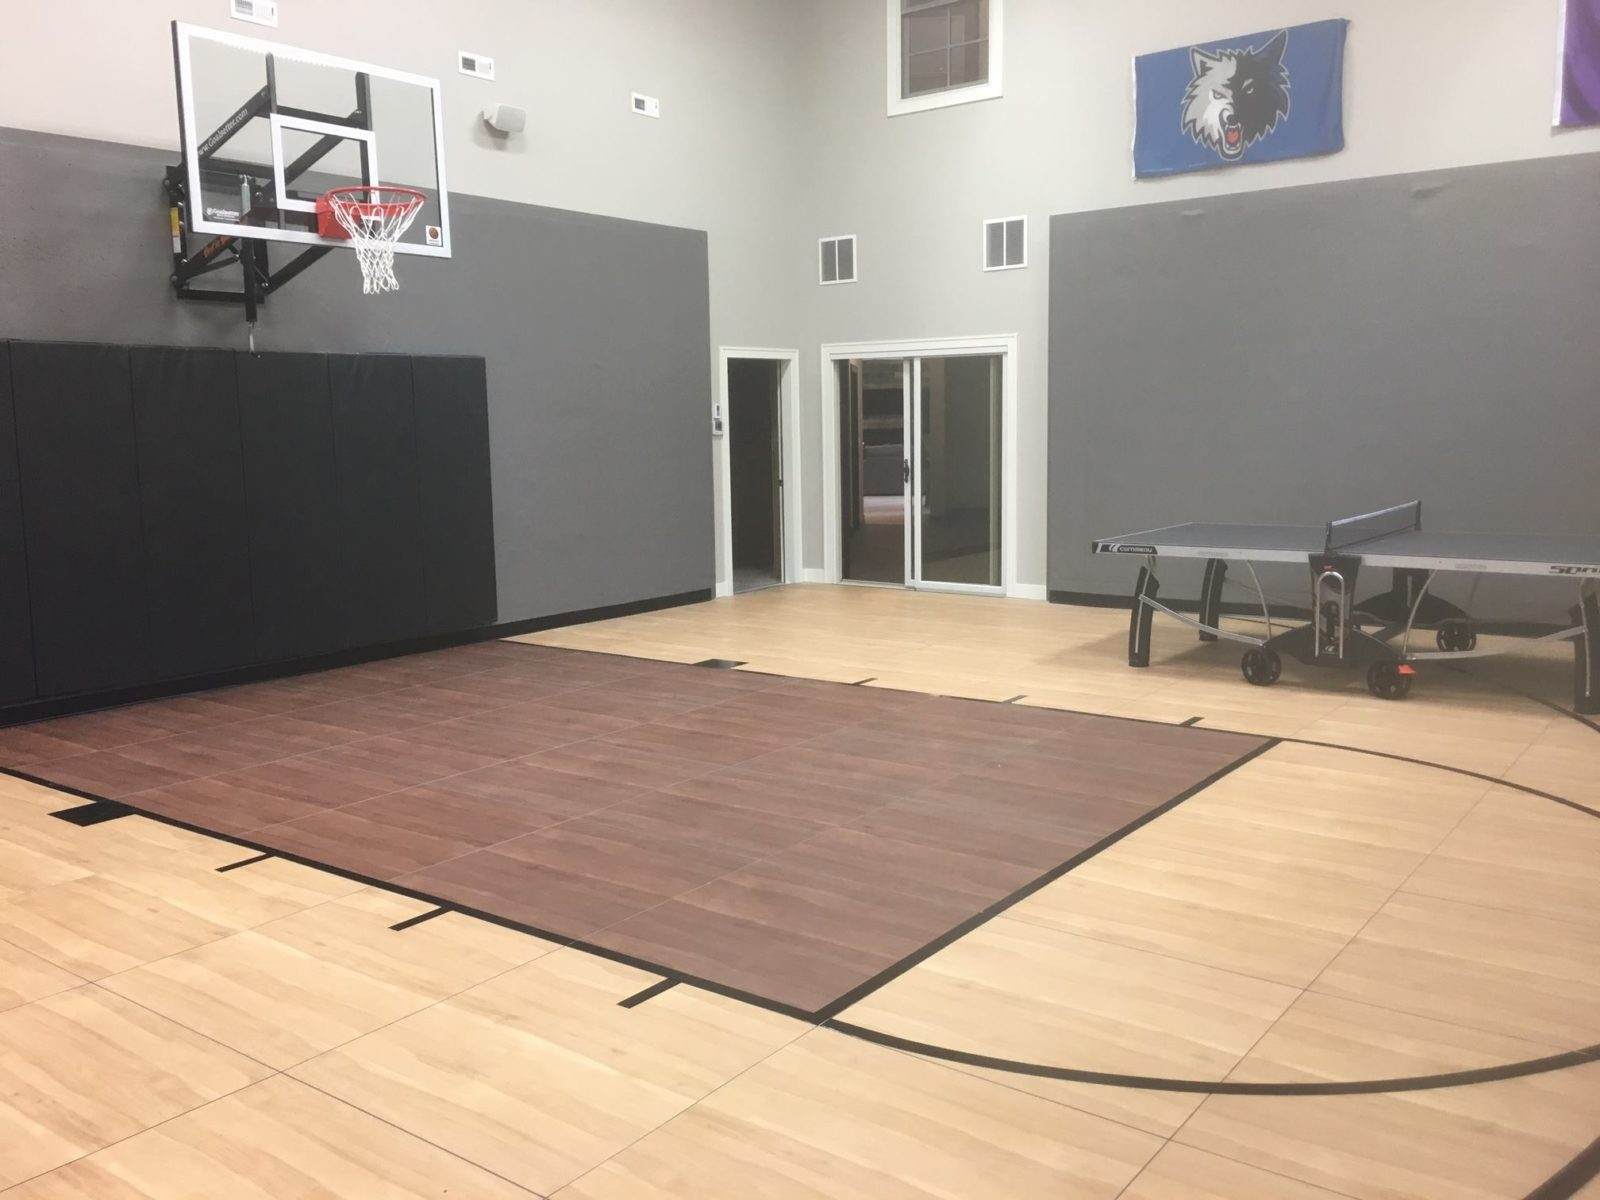 Indoor basketball court in Edina MN with SnapSports flooring in light and dark maple